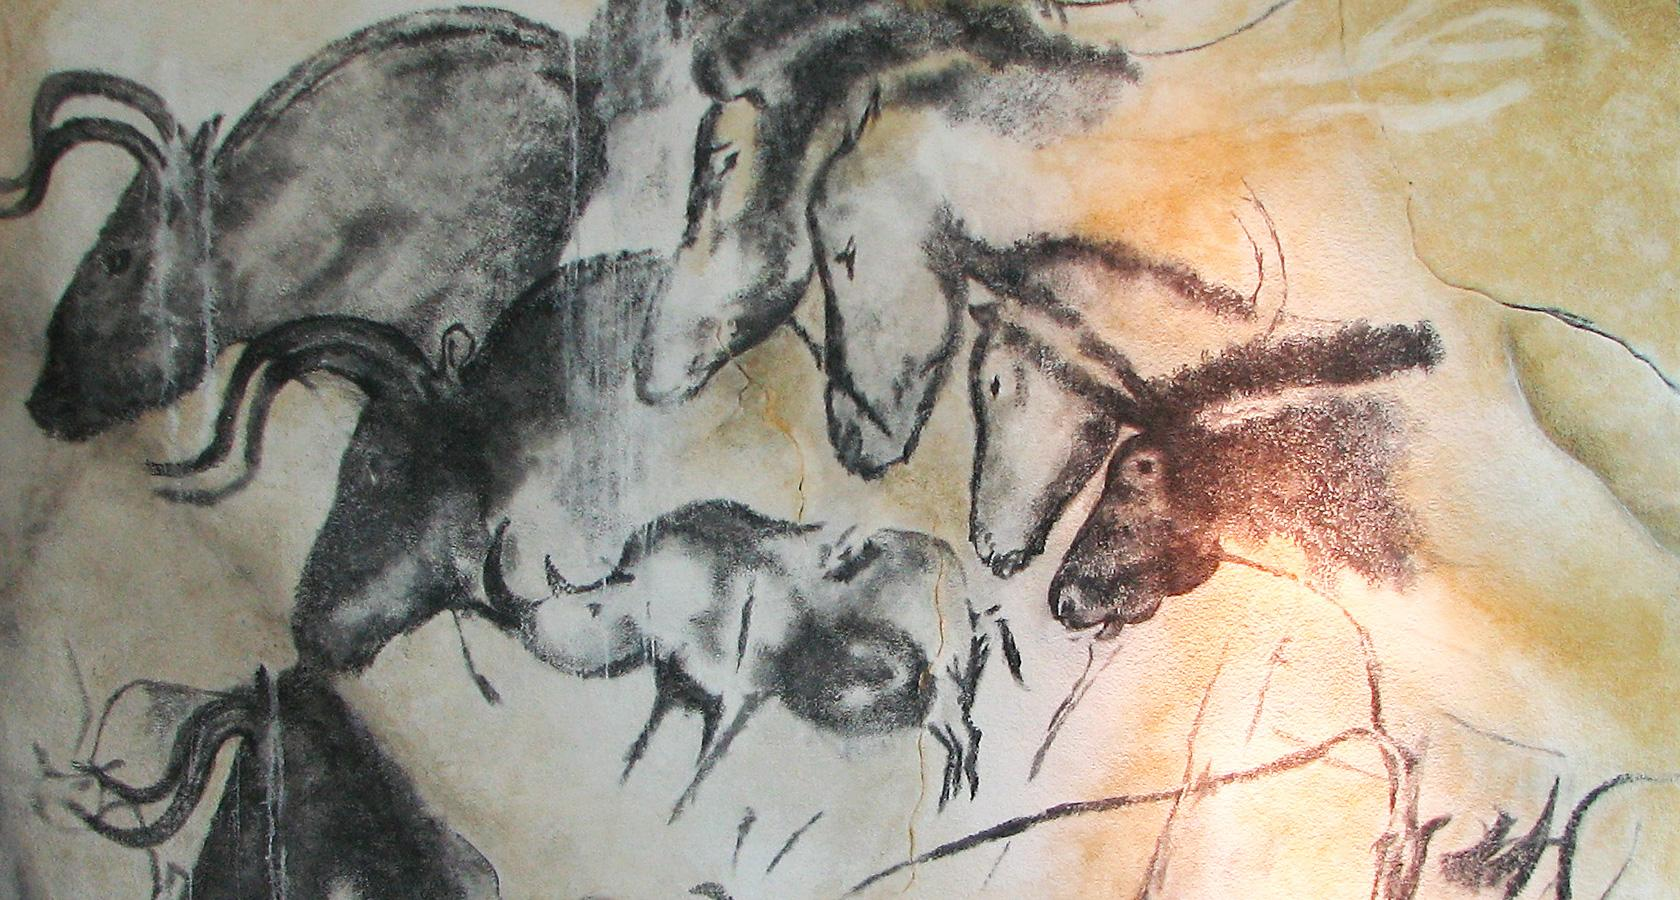 Prehistoric painting in the Chauvet Cave, France